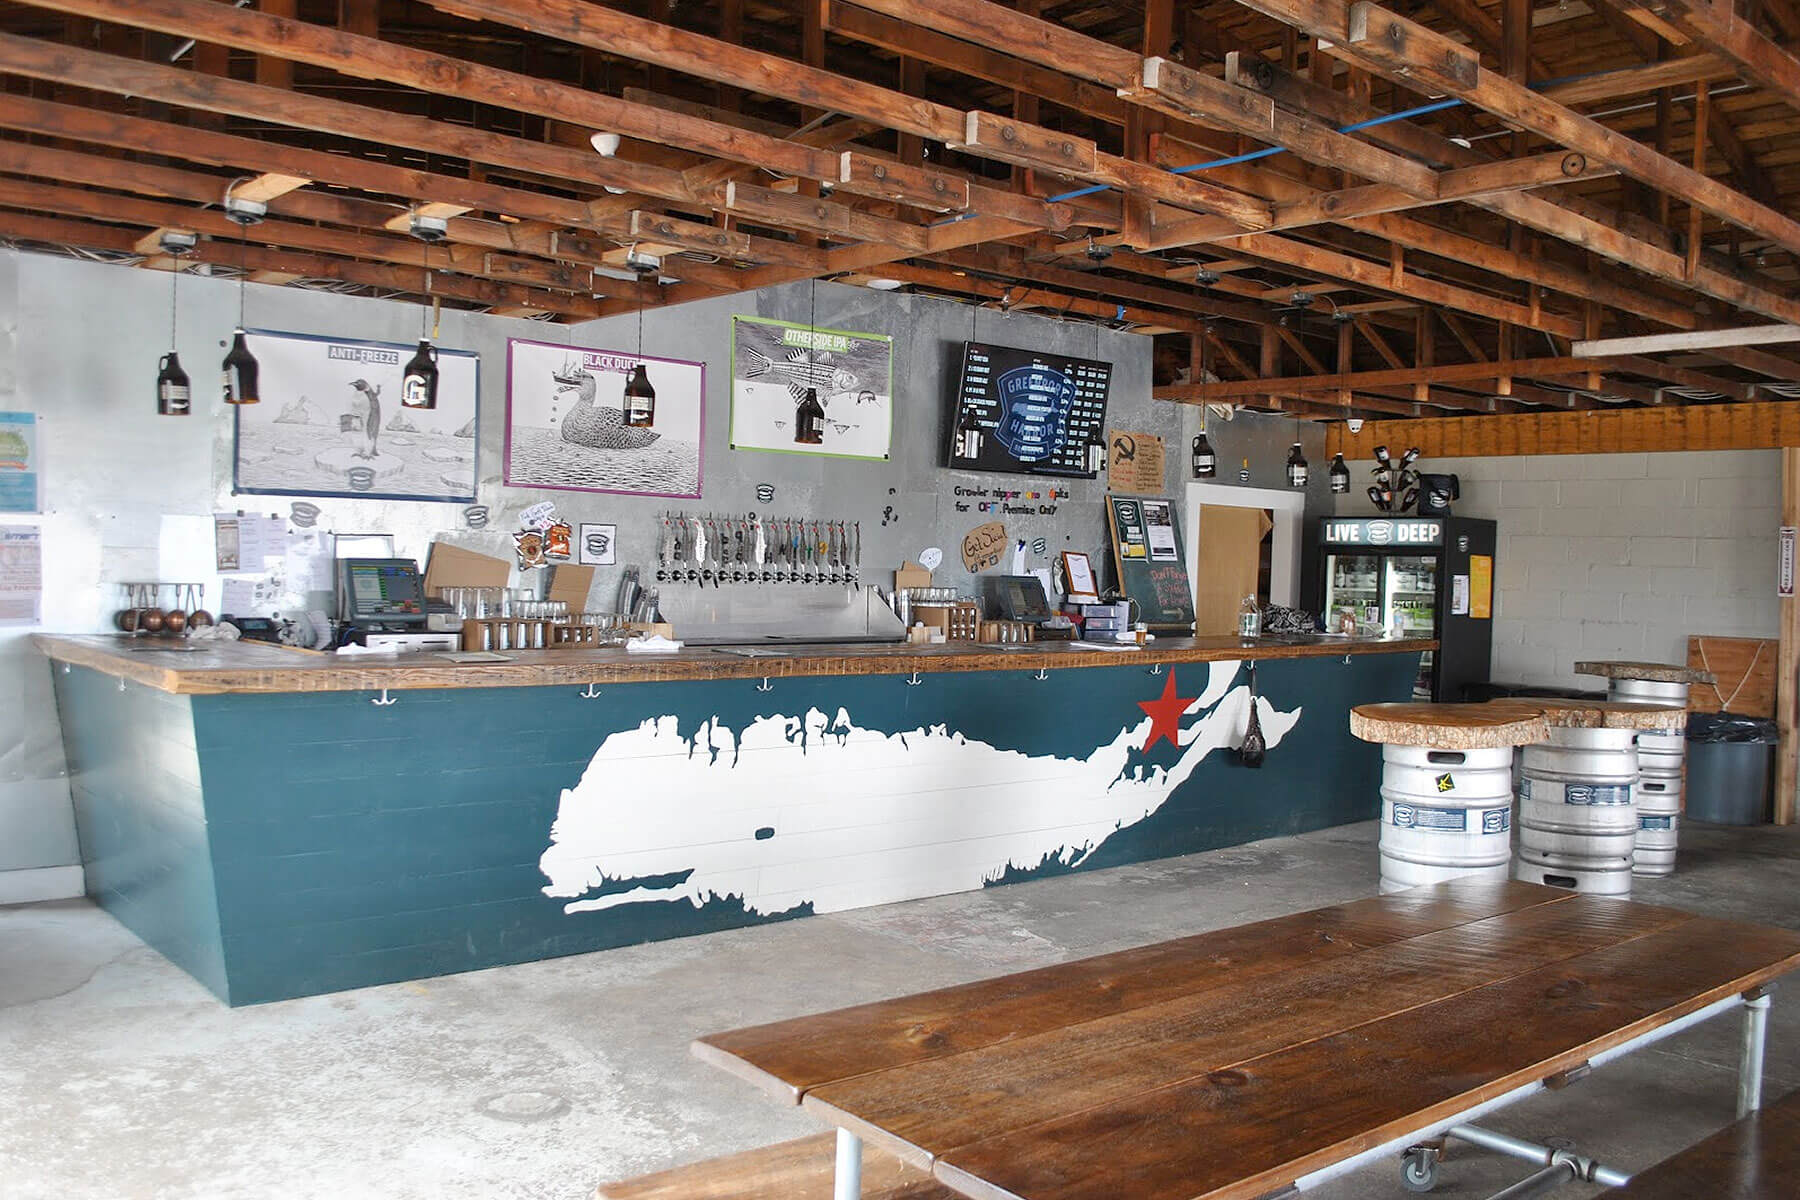 Inside the Greenport Harbor Brewing Co. which was temporarily closed due to an employee being diagnosed with the coronavirus.